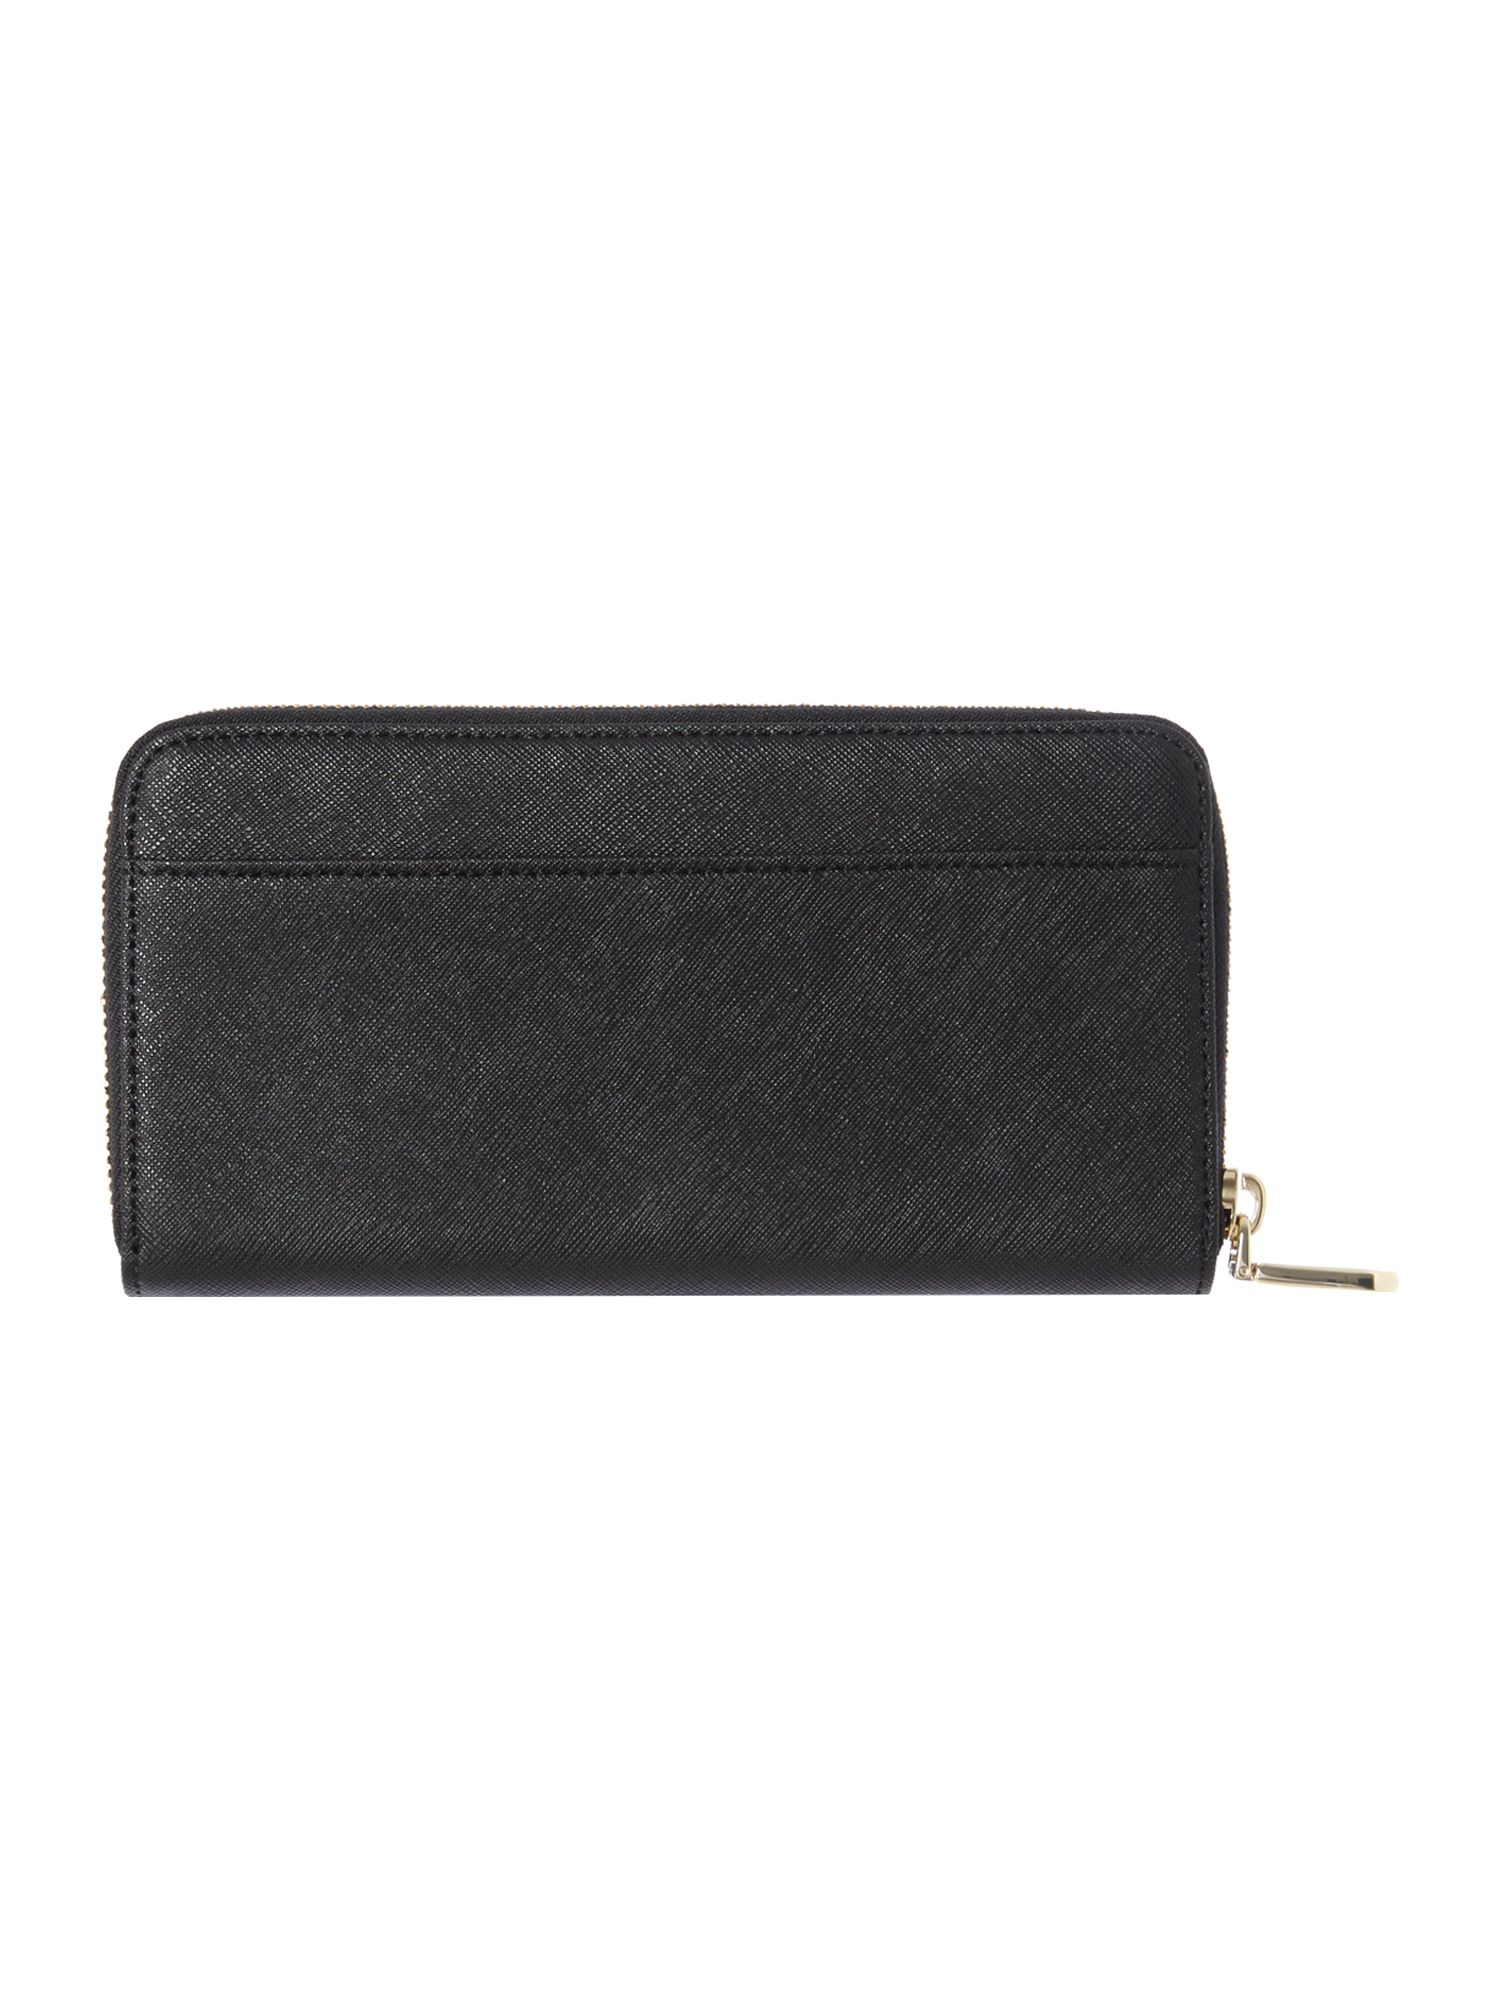 Bryant park black large zip around purse